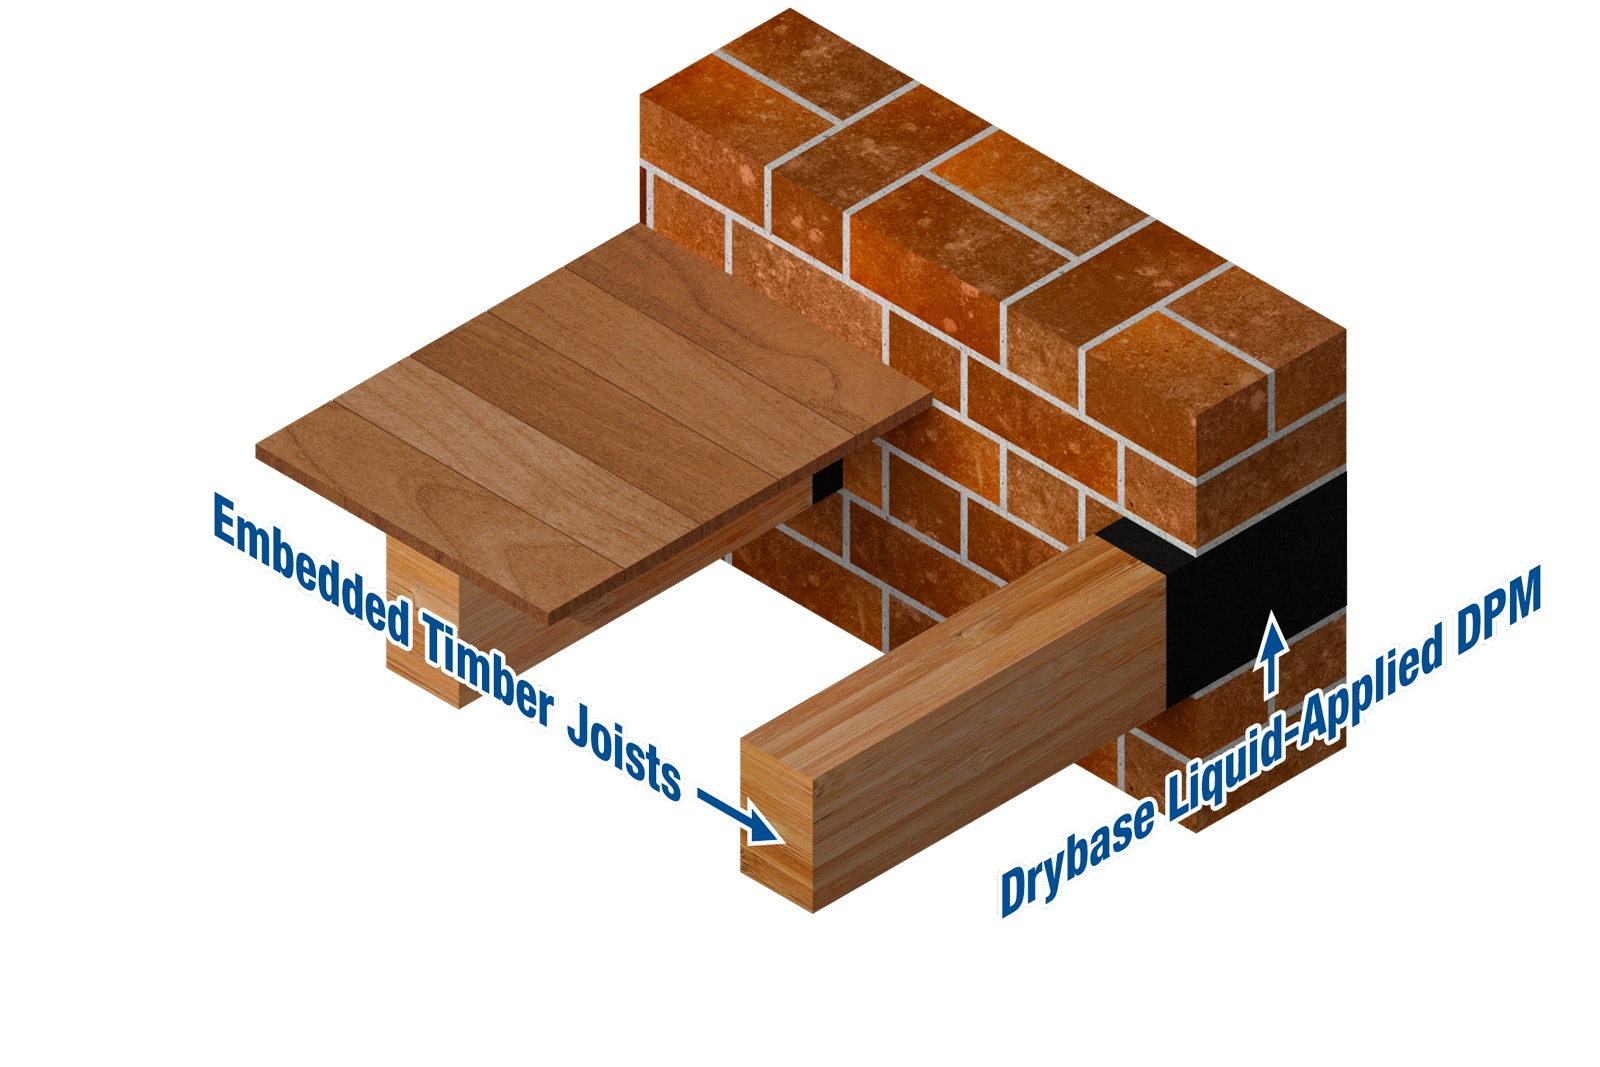 Drybase applied to embedded timber joists